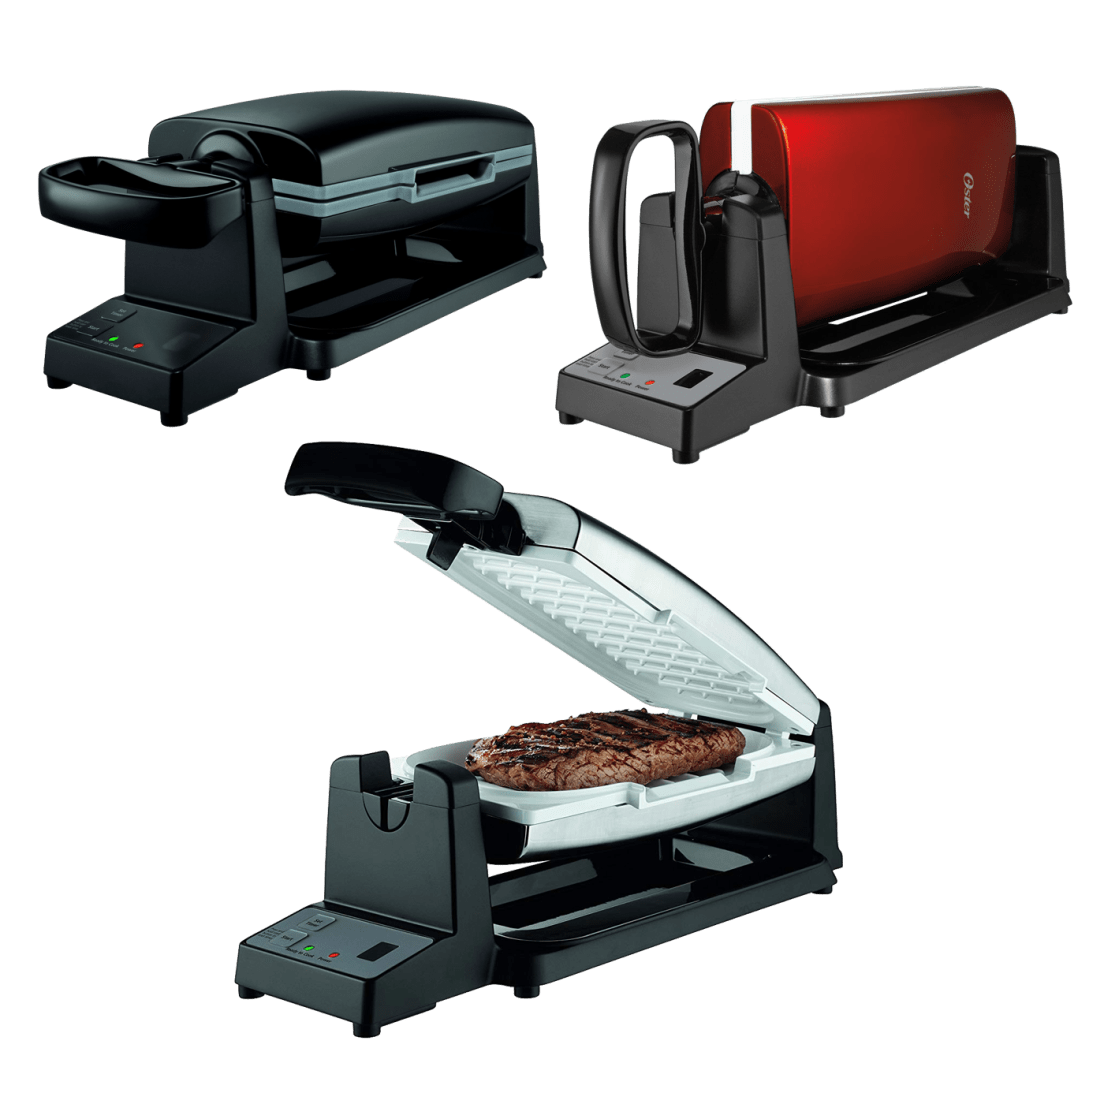 Oster 7-Minute Grill with DuraCeramic Coating and Digital Timer